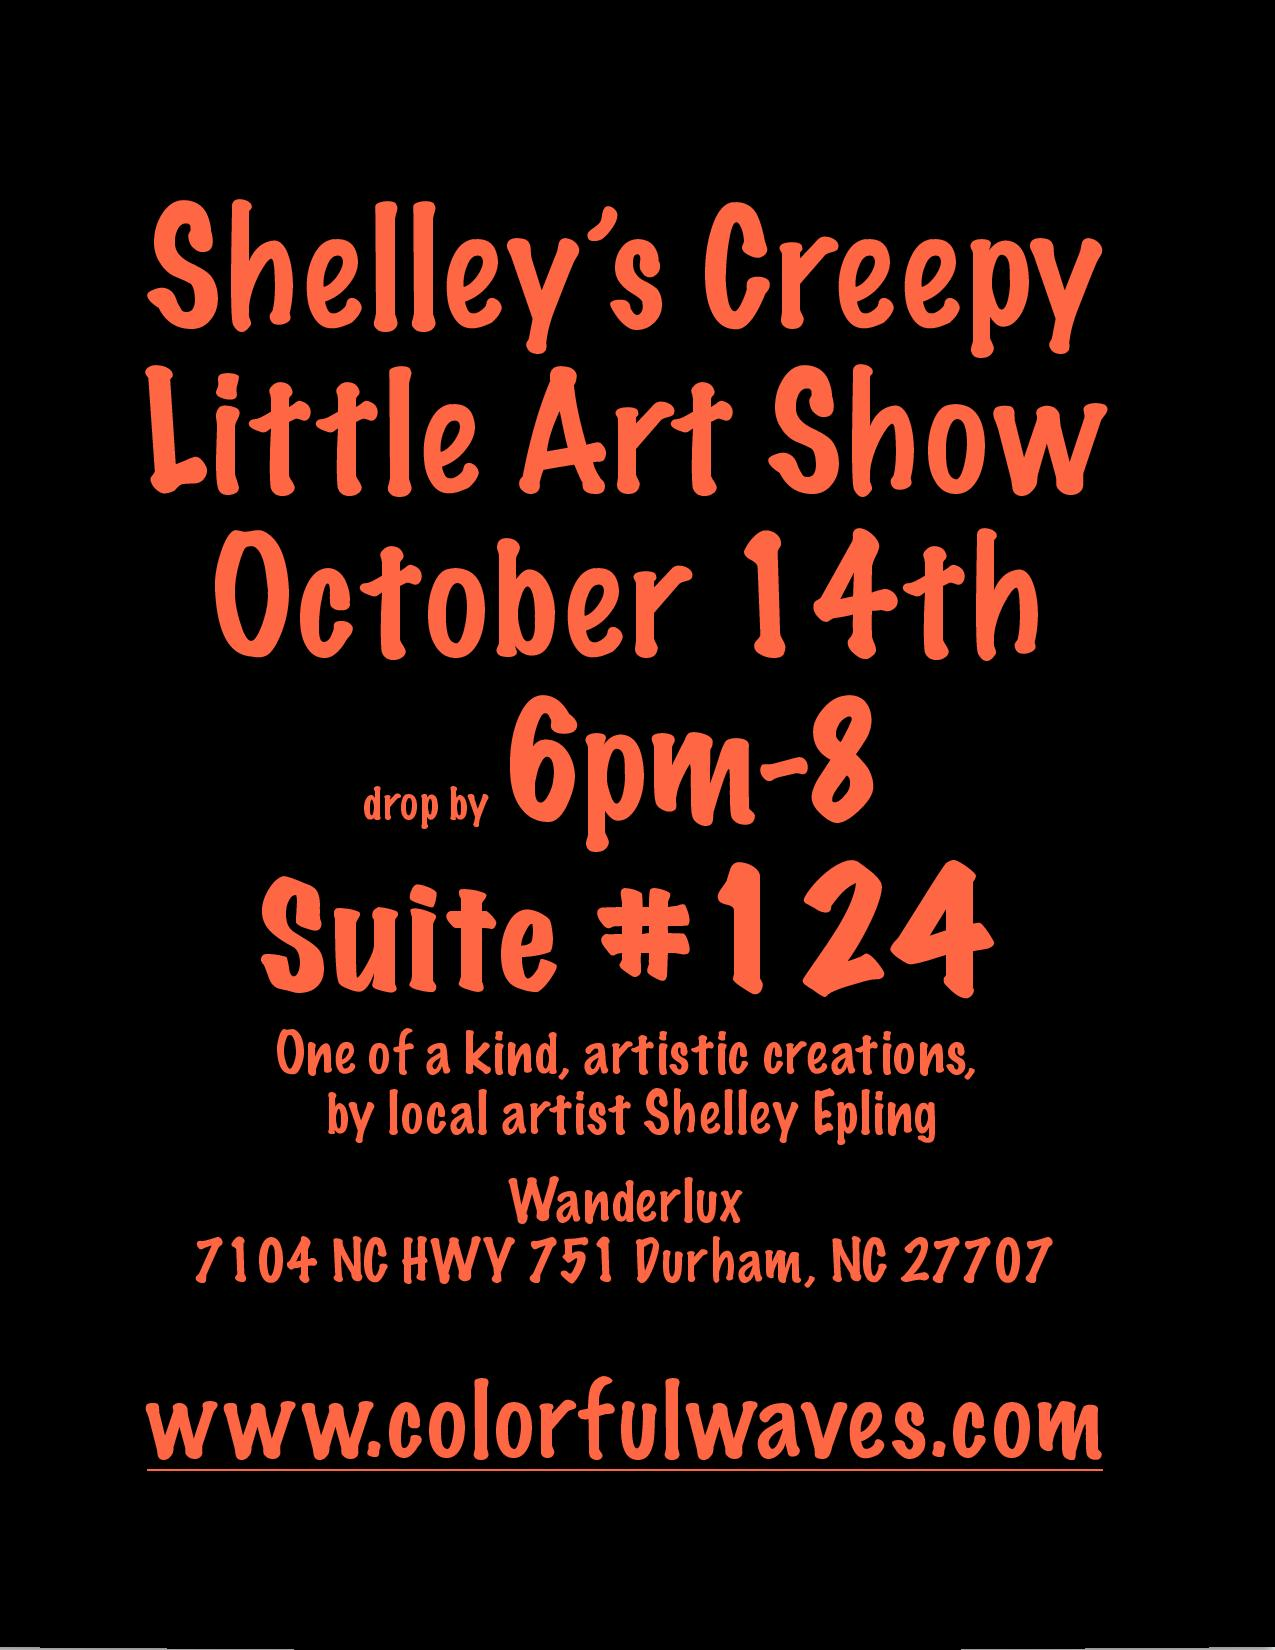 creepy-art-show-full-size-sign-page-001